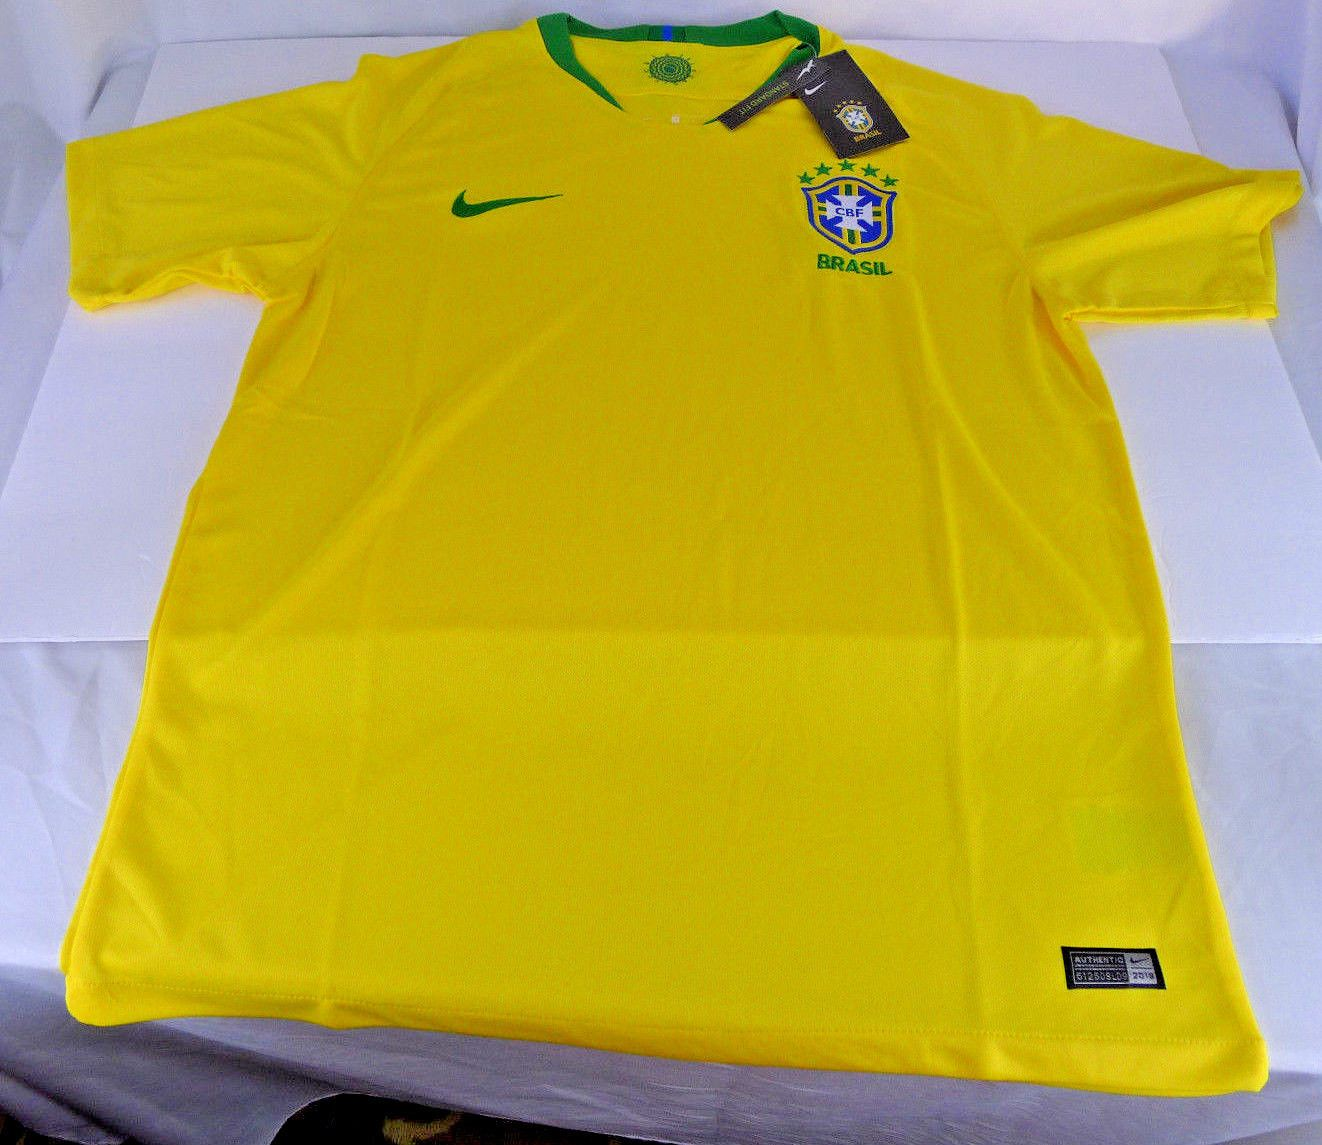 Nike Brasil CBF Soccer Jersey Shirt Dri-Fit 2018 World Cup Yellow Mens  Medium Discount Price 38.99 Free Shipping Buy it Now 5909206f5